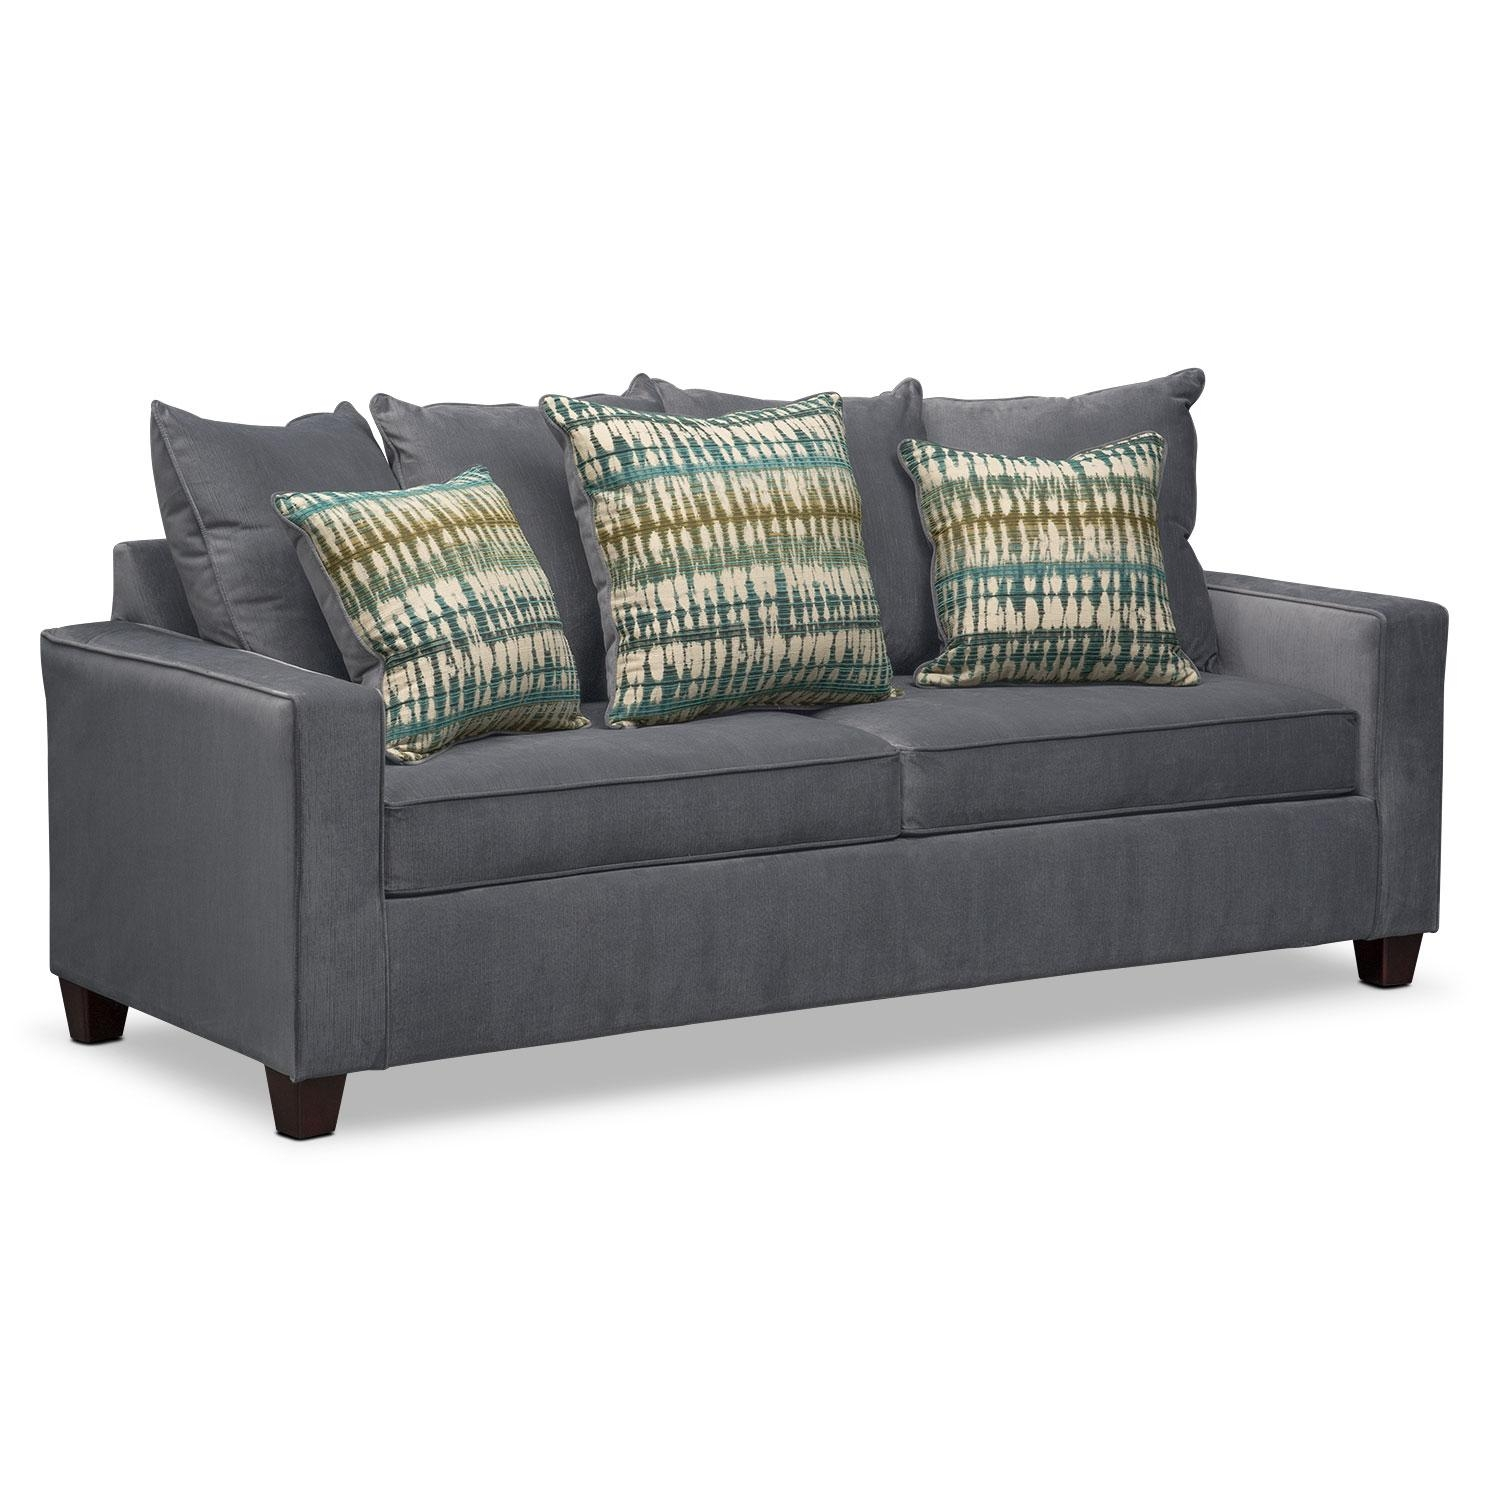 Bryden Queen Memory Foam Sleeper Sofa – Slate | Value City Furniture Within Queen Convertible Sofas (Image 3 of 20)